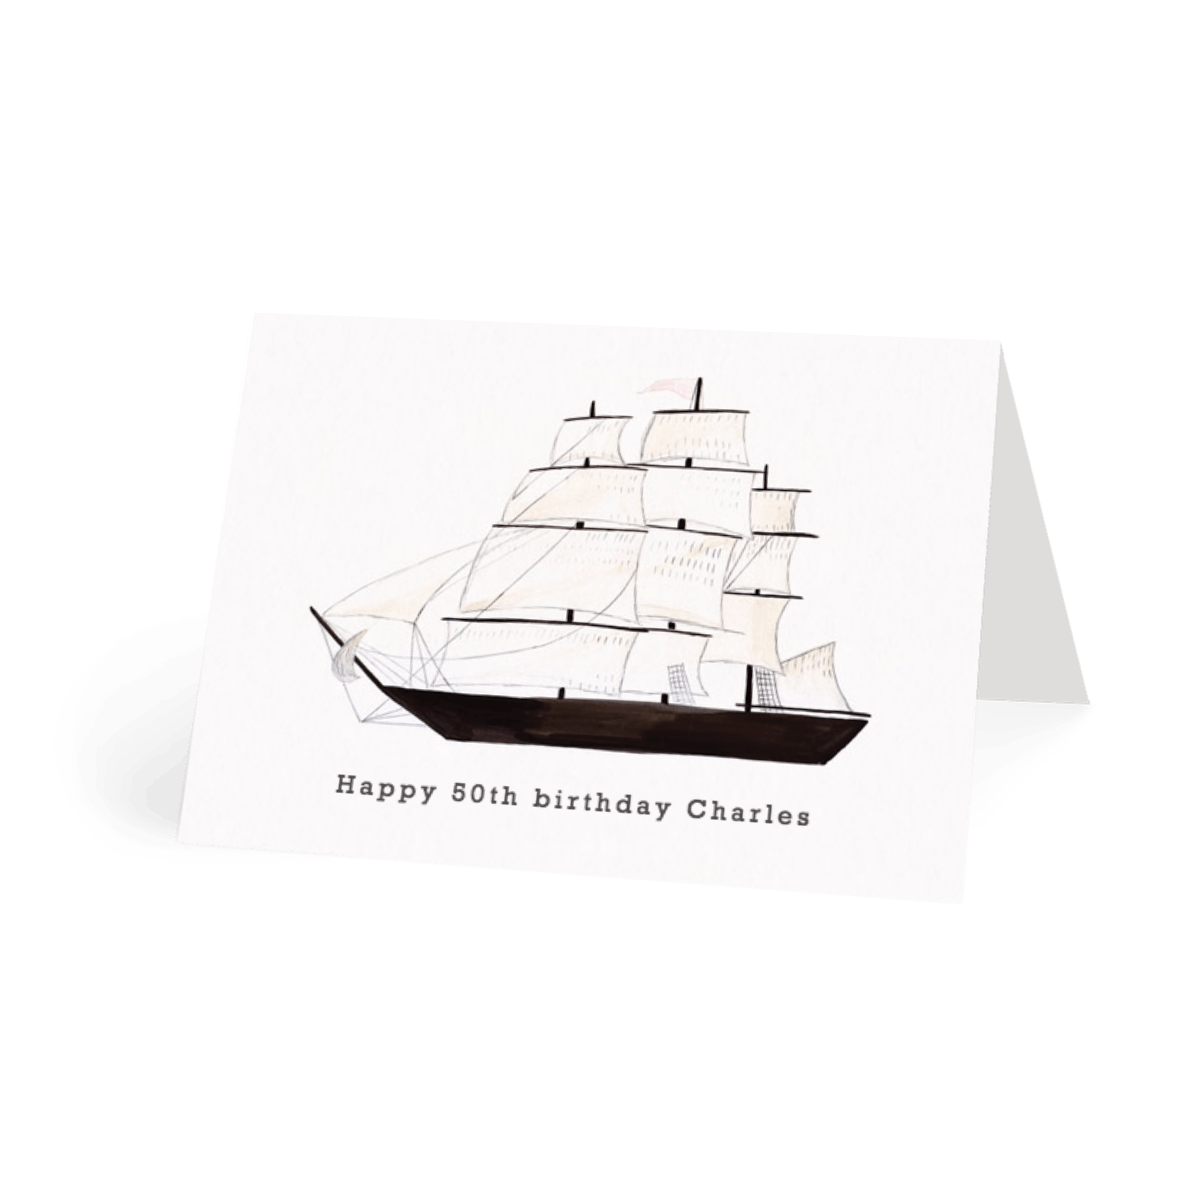 Https%3a%2f%2fwww.papier.com%2fproduct image%2f3990%2f14%2fclipper ship 1059 front 1453911084.png?ixlib=rb 1.1